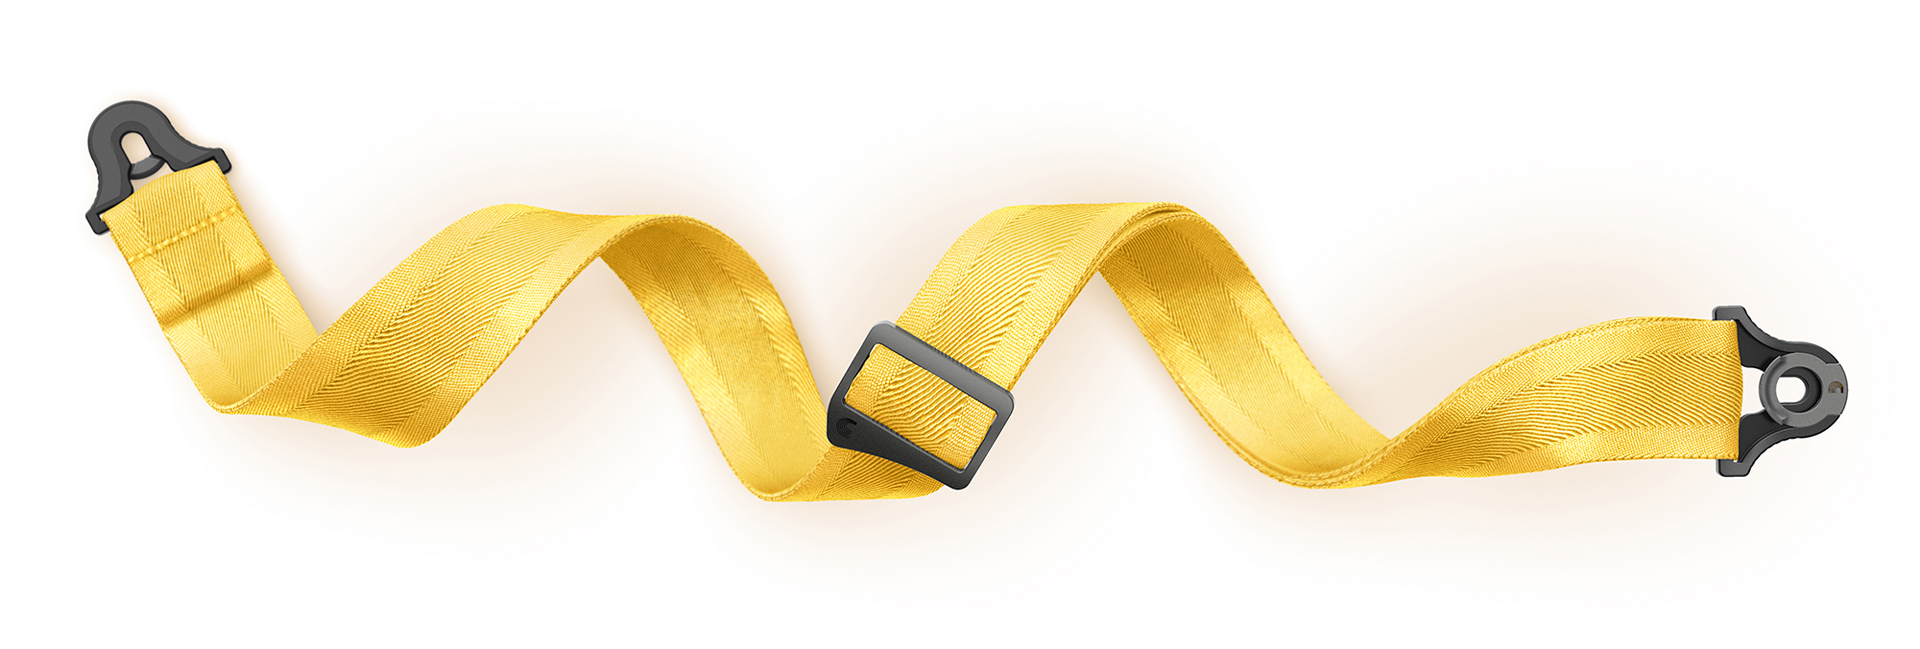 D'Addario Guitar Strap Lock Yellow Product Render